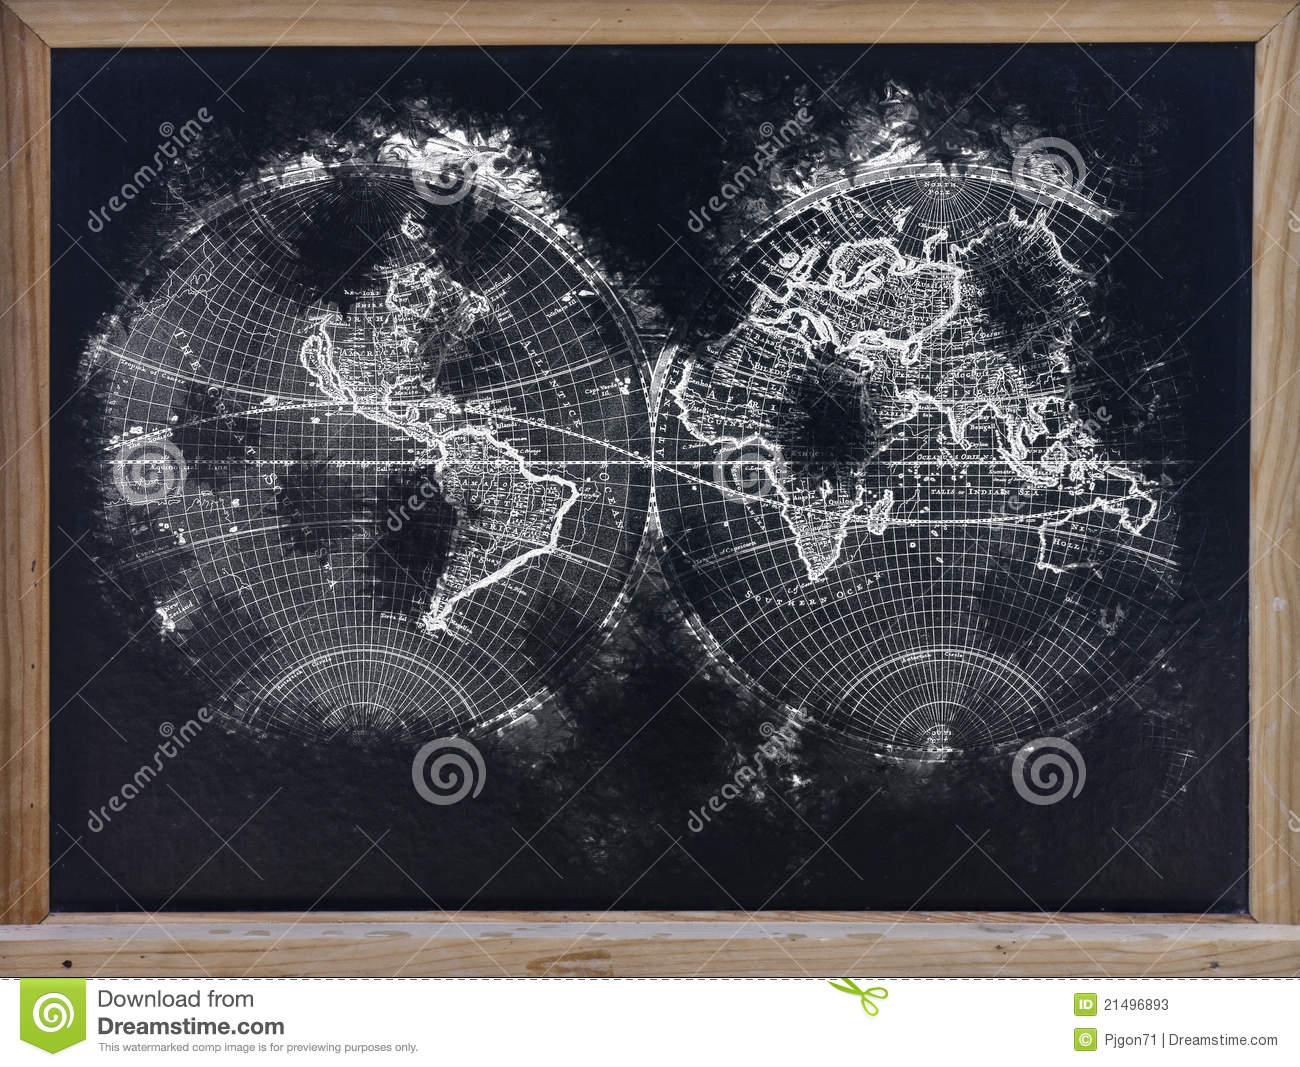 carte du monde dans le tableau noir image stock image. Black Bedroom Furniture Sets. Home Design Ideas